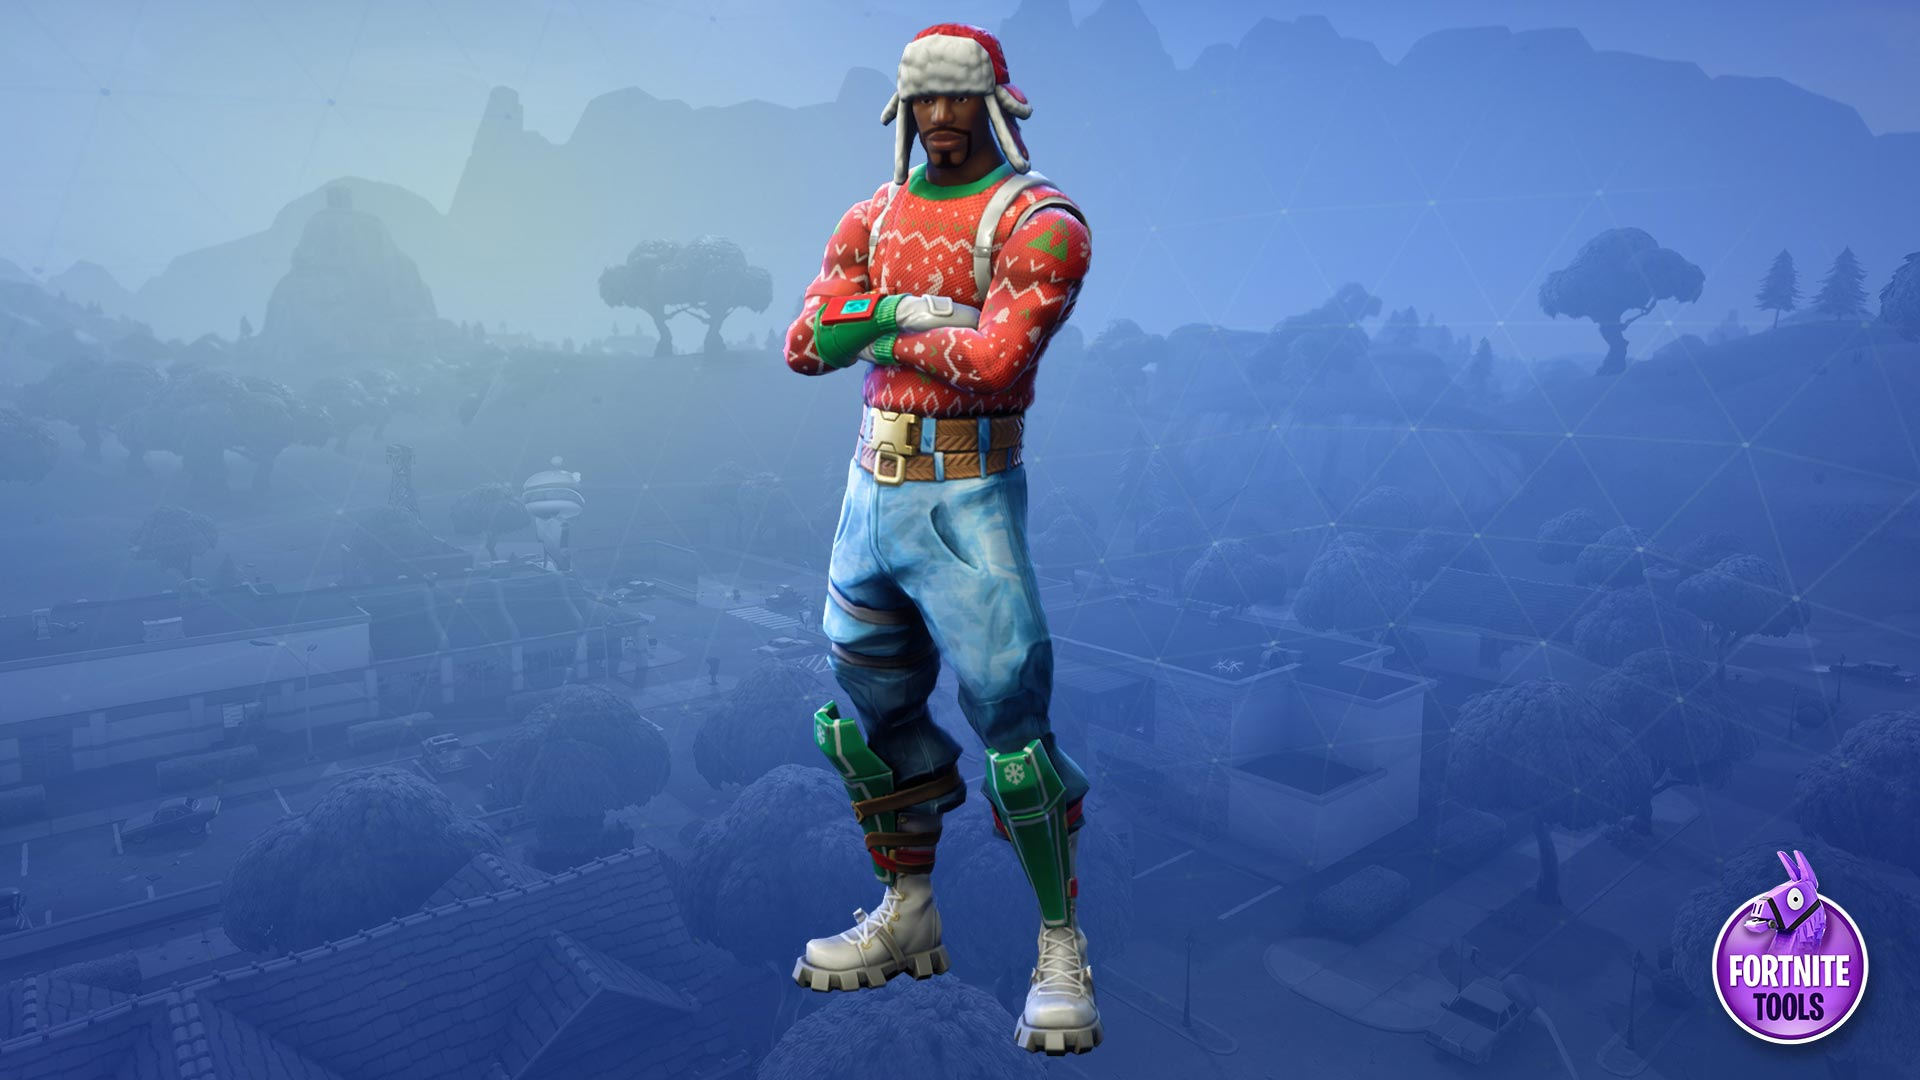 Fortnite Battle Royale Skin Yuletide Ranger Wallpaper